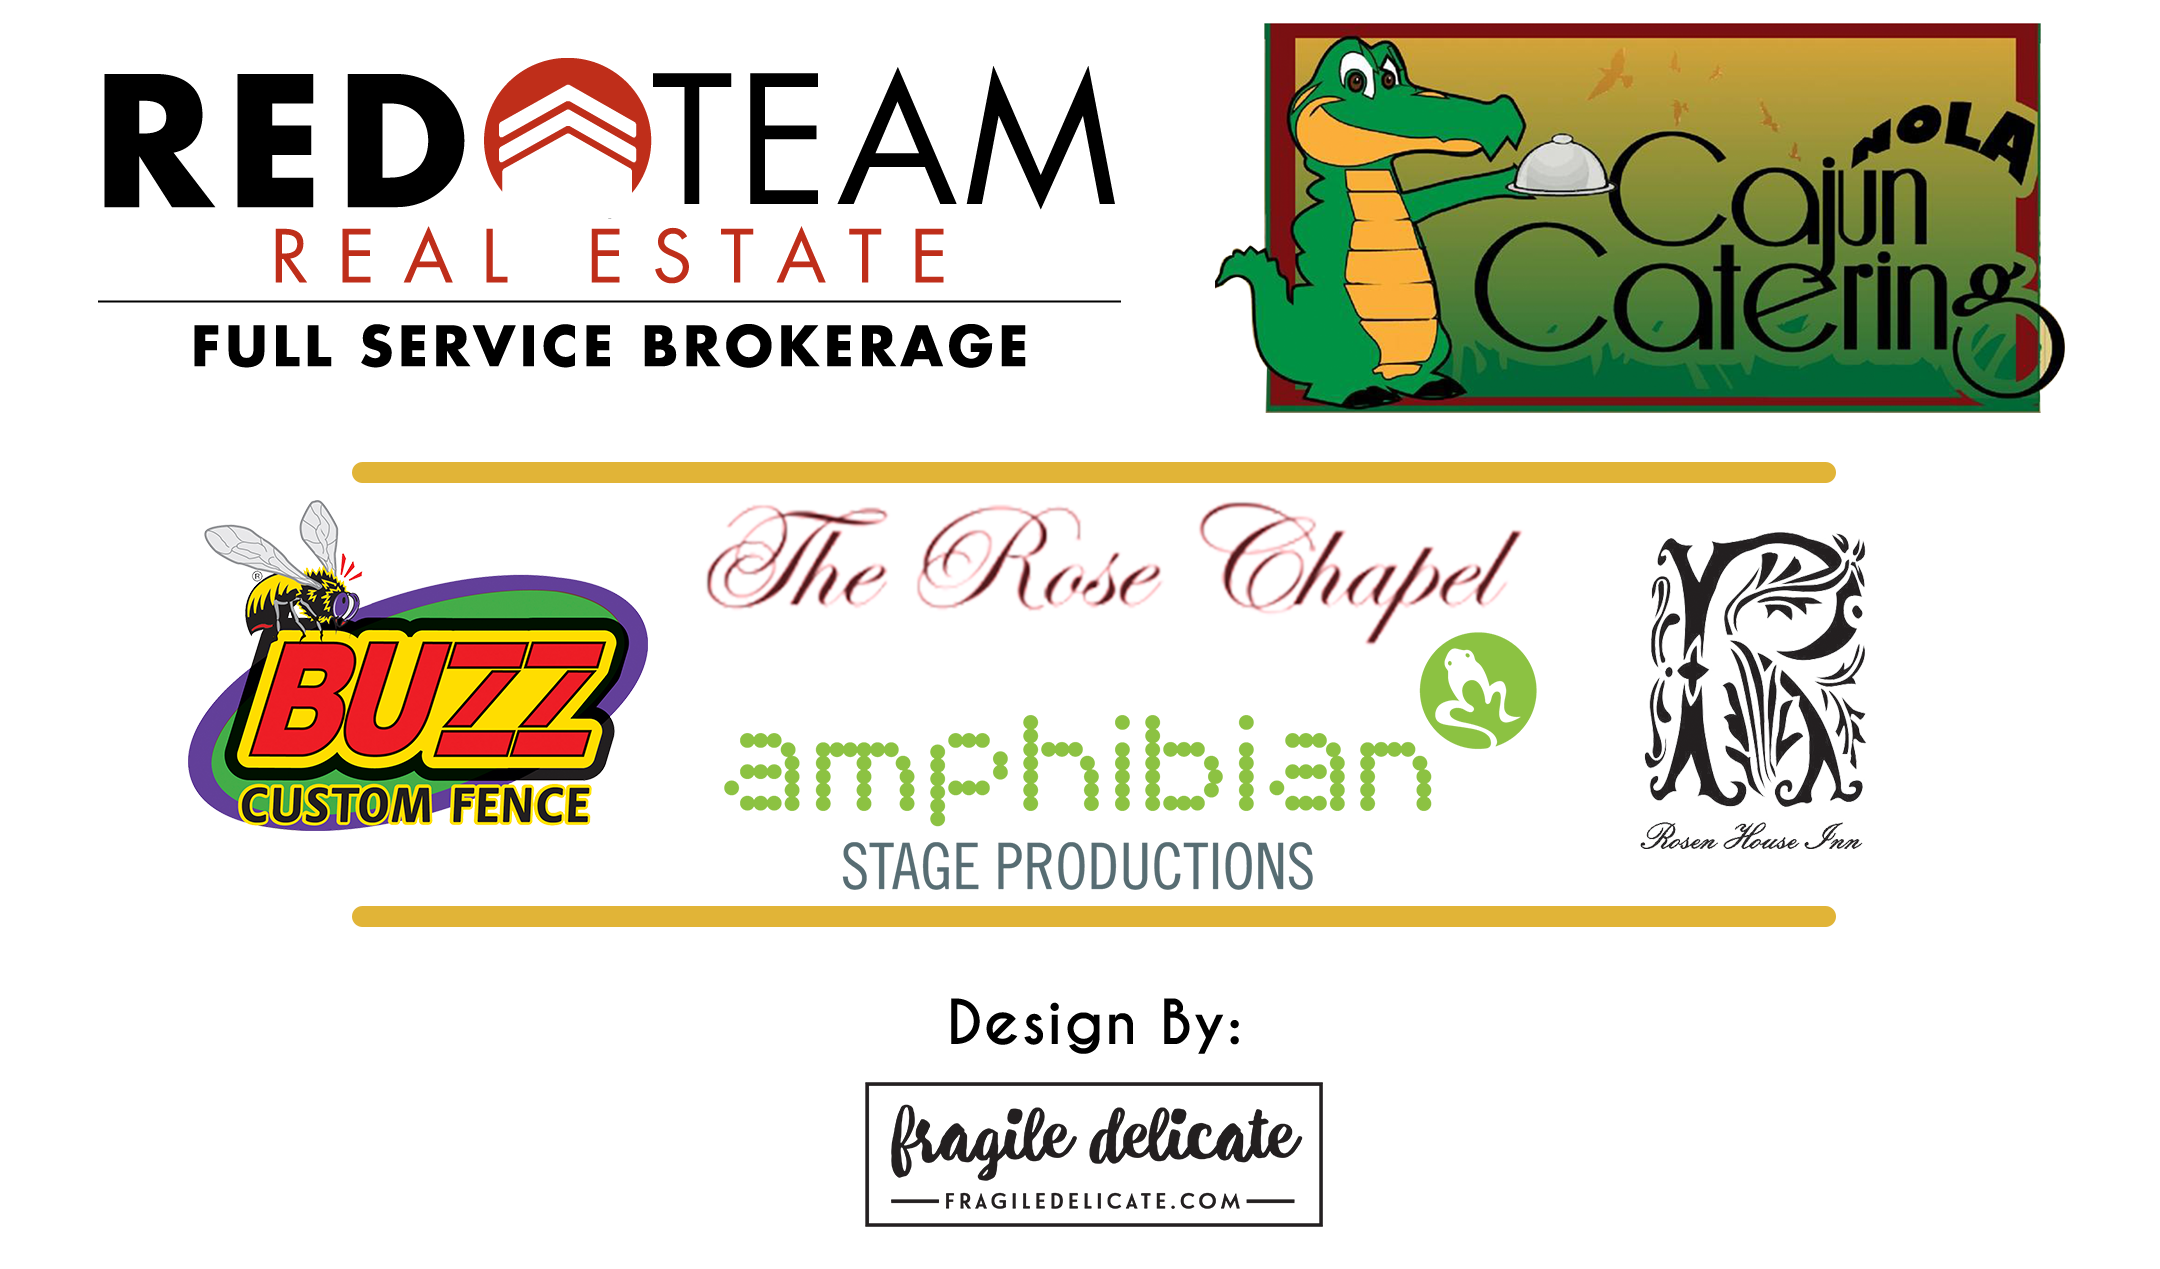 Sponsors: Red Team Real Estate, NOLA Cajun Catering, Buzz Fence, Rosen House, Amphibian Theatre, Rose House Inn,